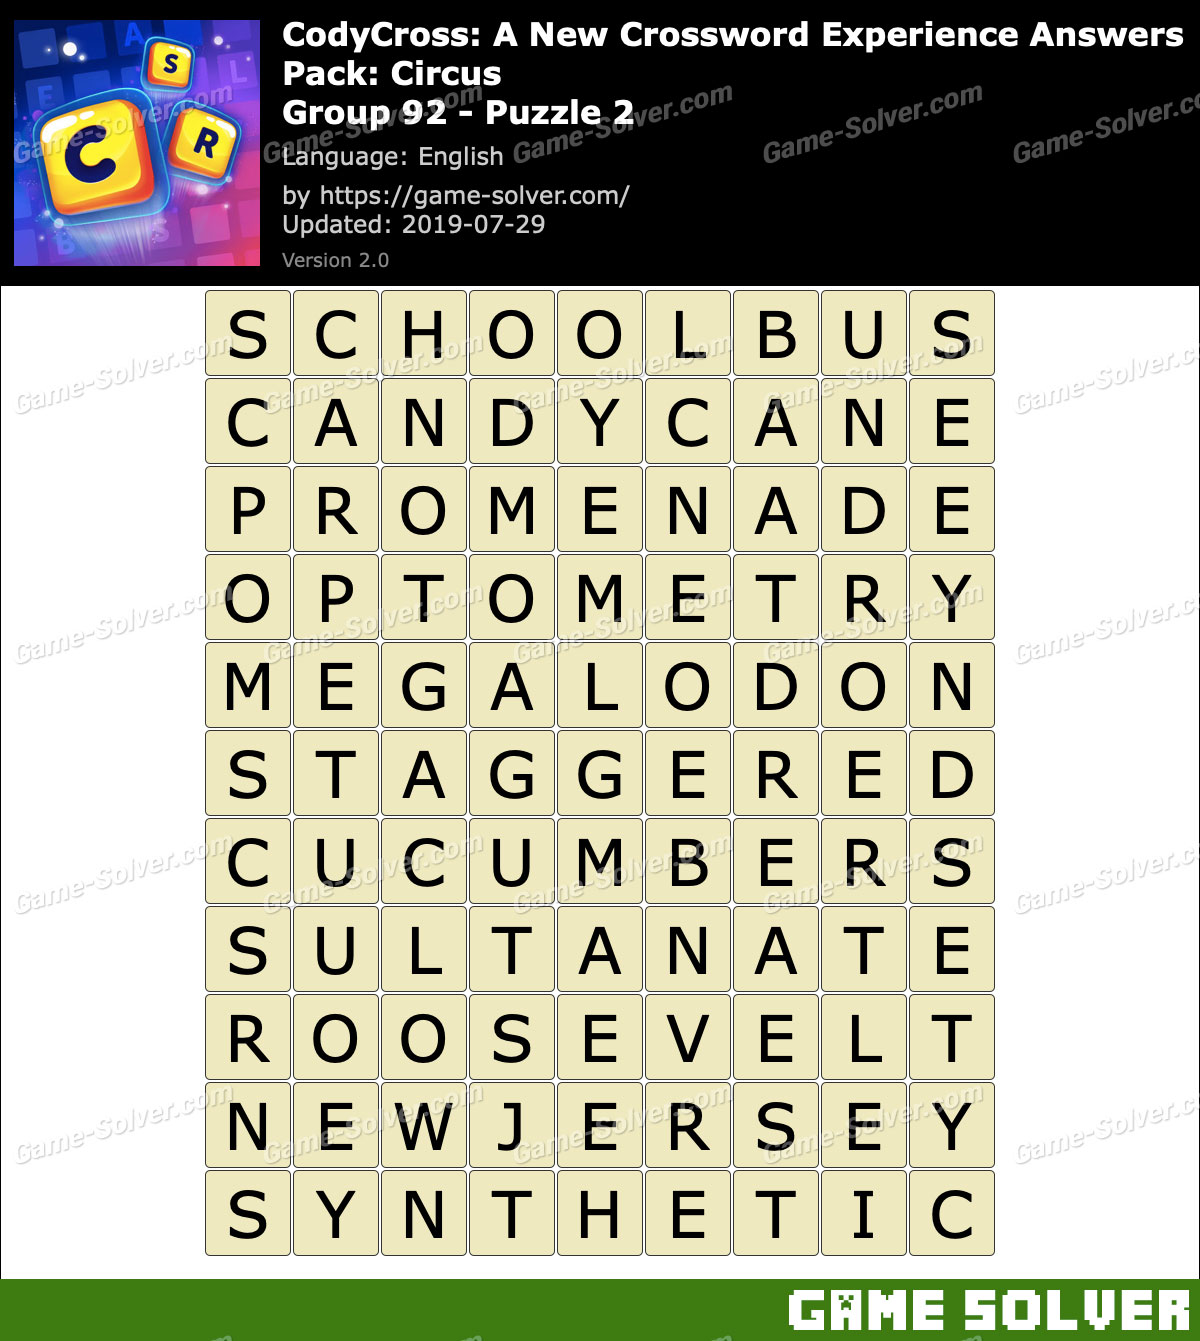 CodyCross Circus Group 92-Puzzle 2 Answers